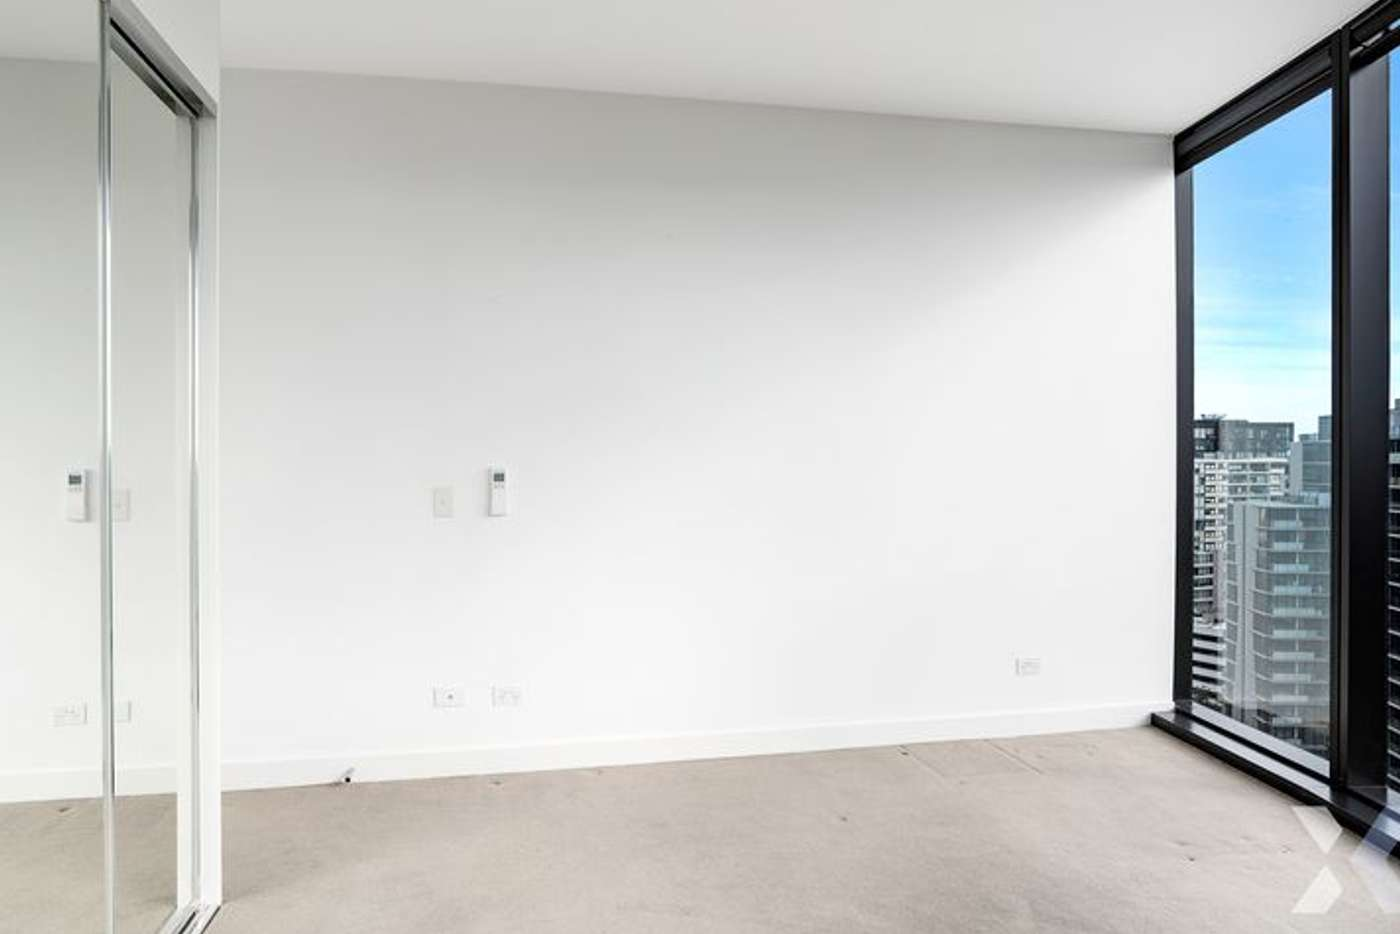 Sixth view of Homely apartment listing, 707/35 Malcolm Street, South Yarra VIC 3141